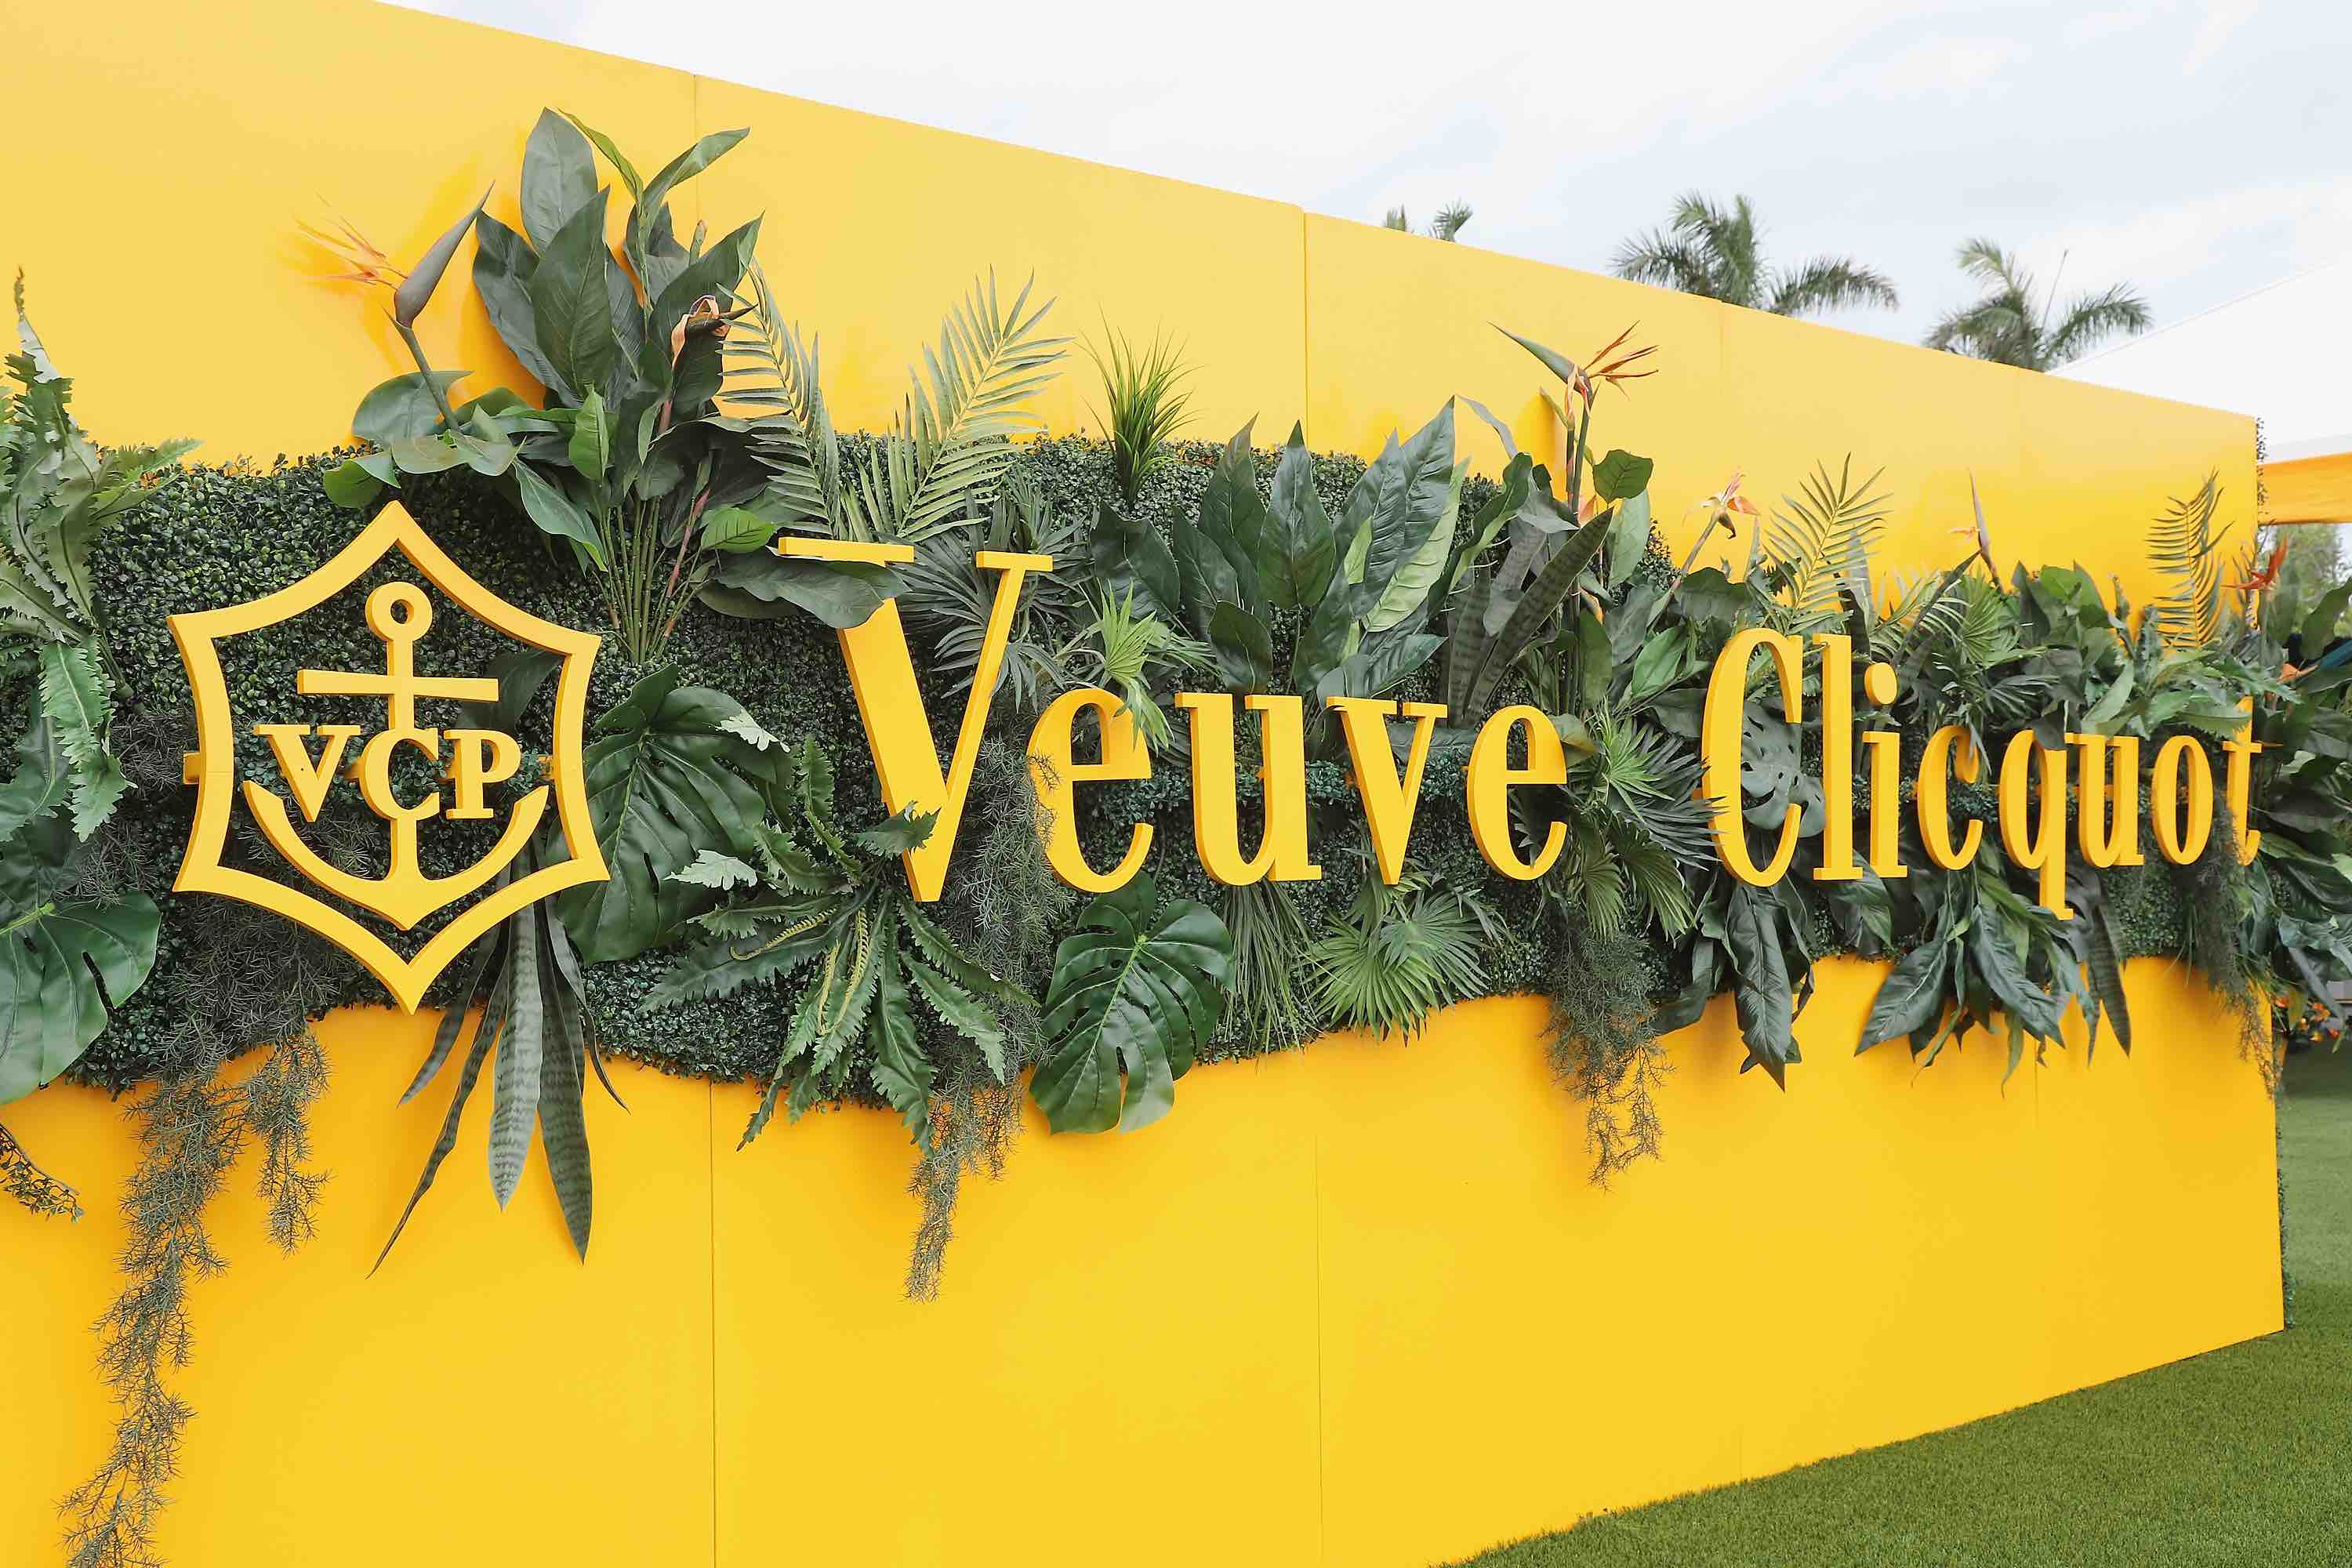 MIAMI, FL - MARCH 10: General view of the venue at the 4th Annual Veuve Clicquot Carnaval at Museum Park on March 10, 2018 in Miami, Florida.